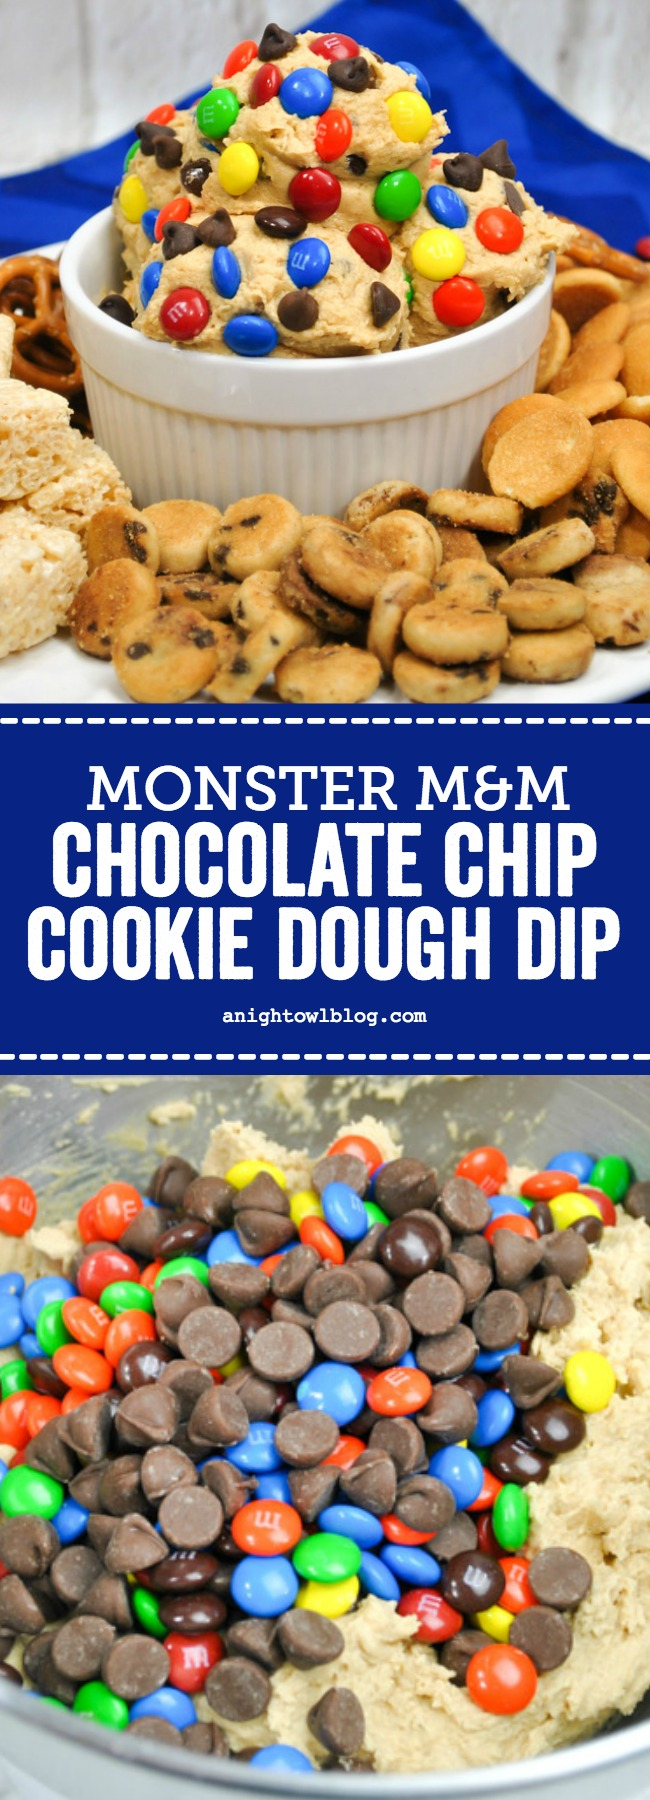 Loaded with chocolate chips, M&Ms and oatmeal, this Monster M&Ms Chocolate Chip Cookie Dough Dip is going to be a hit with your kids or at your next get together! #DessertDip #CookieDough